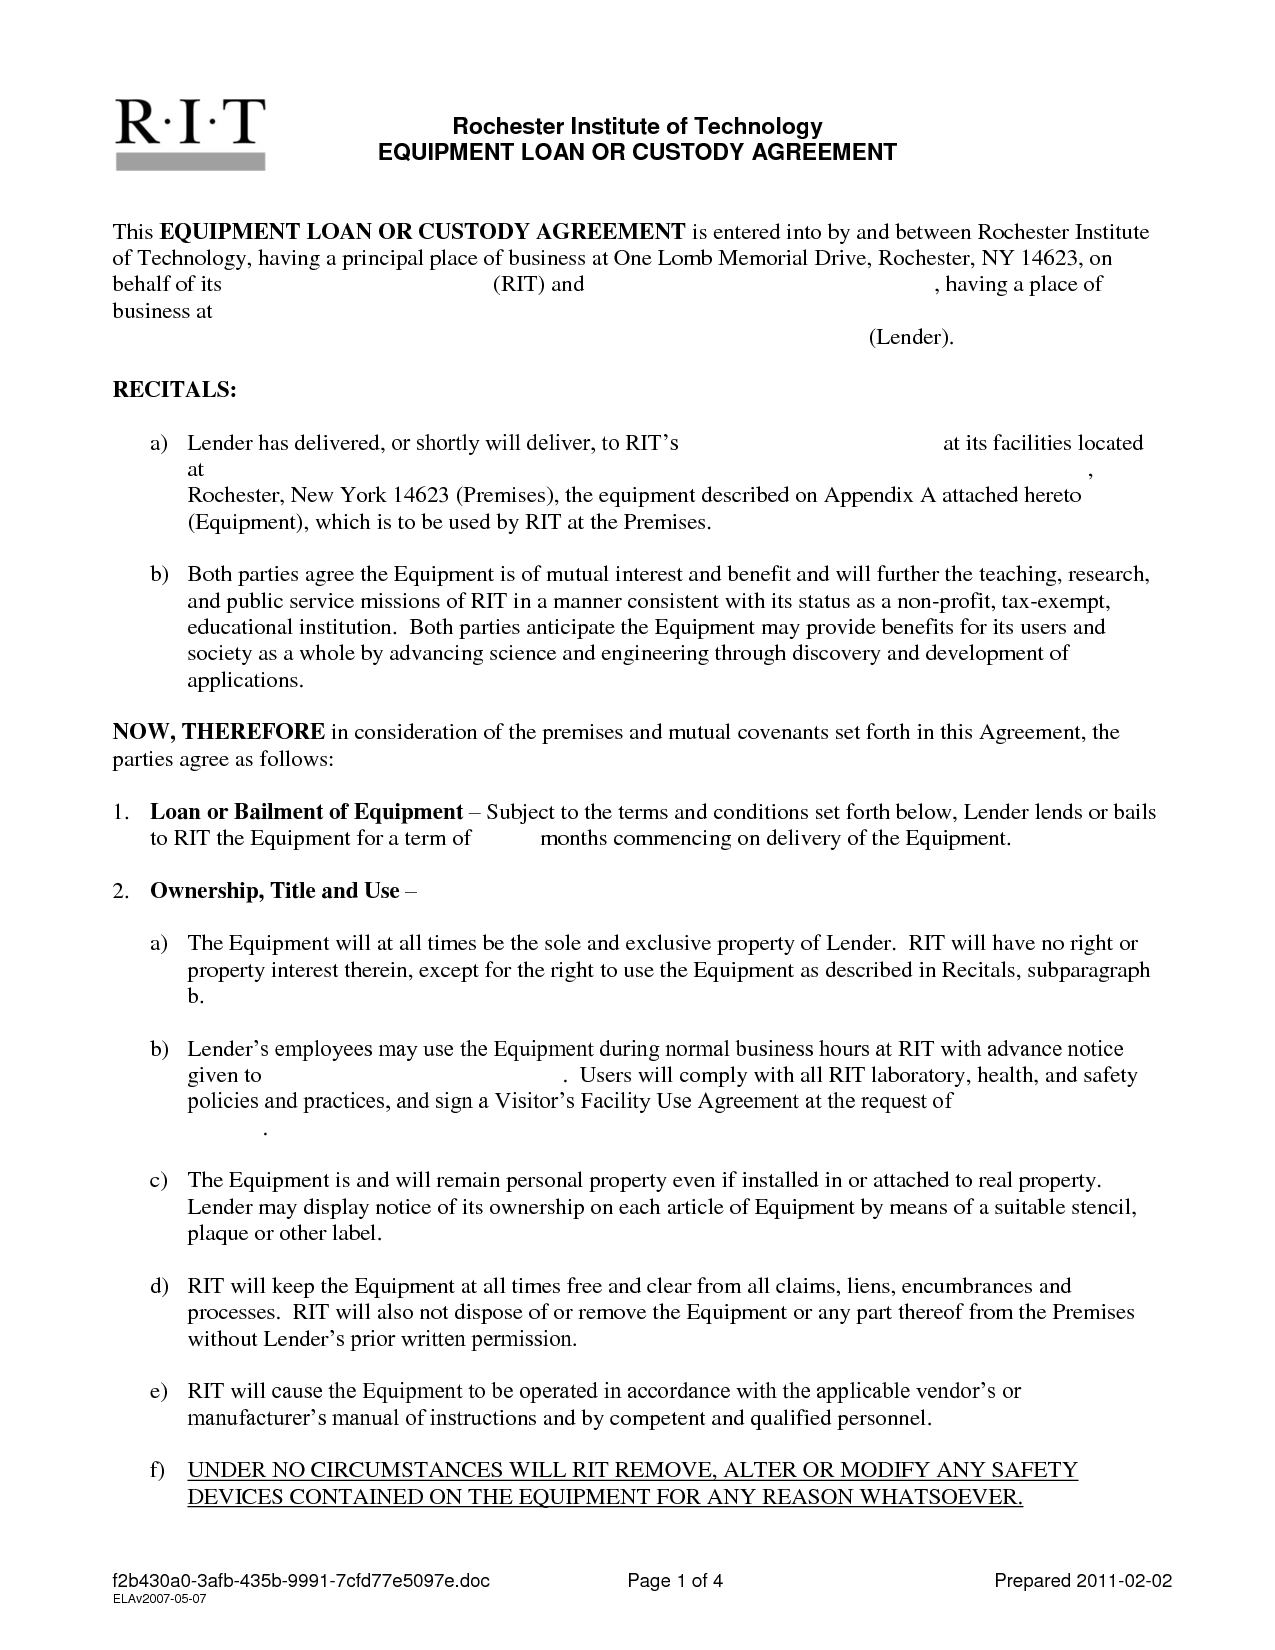 Free Loan Agreement Template Loan Contract Template 26 Examples In Word Pdf  Free, 5 Loan Agreement Templates To Write Perfect Agreements, Loan Agreement  ...  Mortgage Note Template